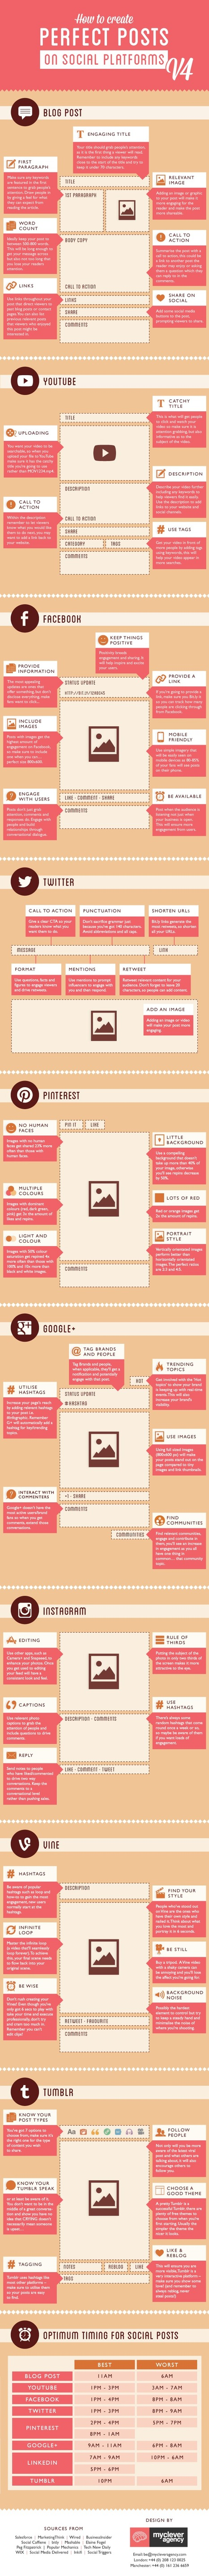 The Art of Creating Perfect Social Media Posts - infographic | Online tips & social media nieuws | Scoop.it